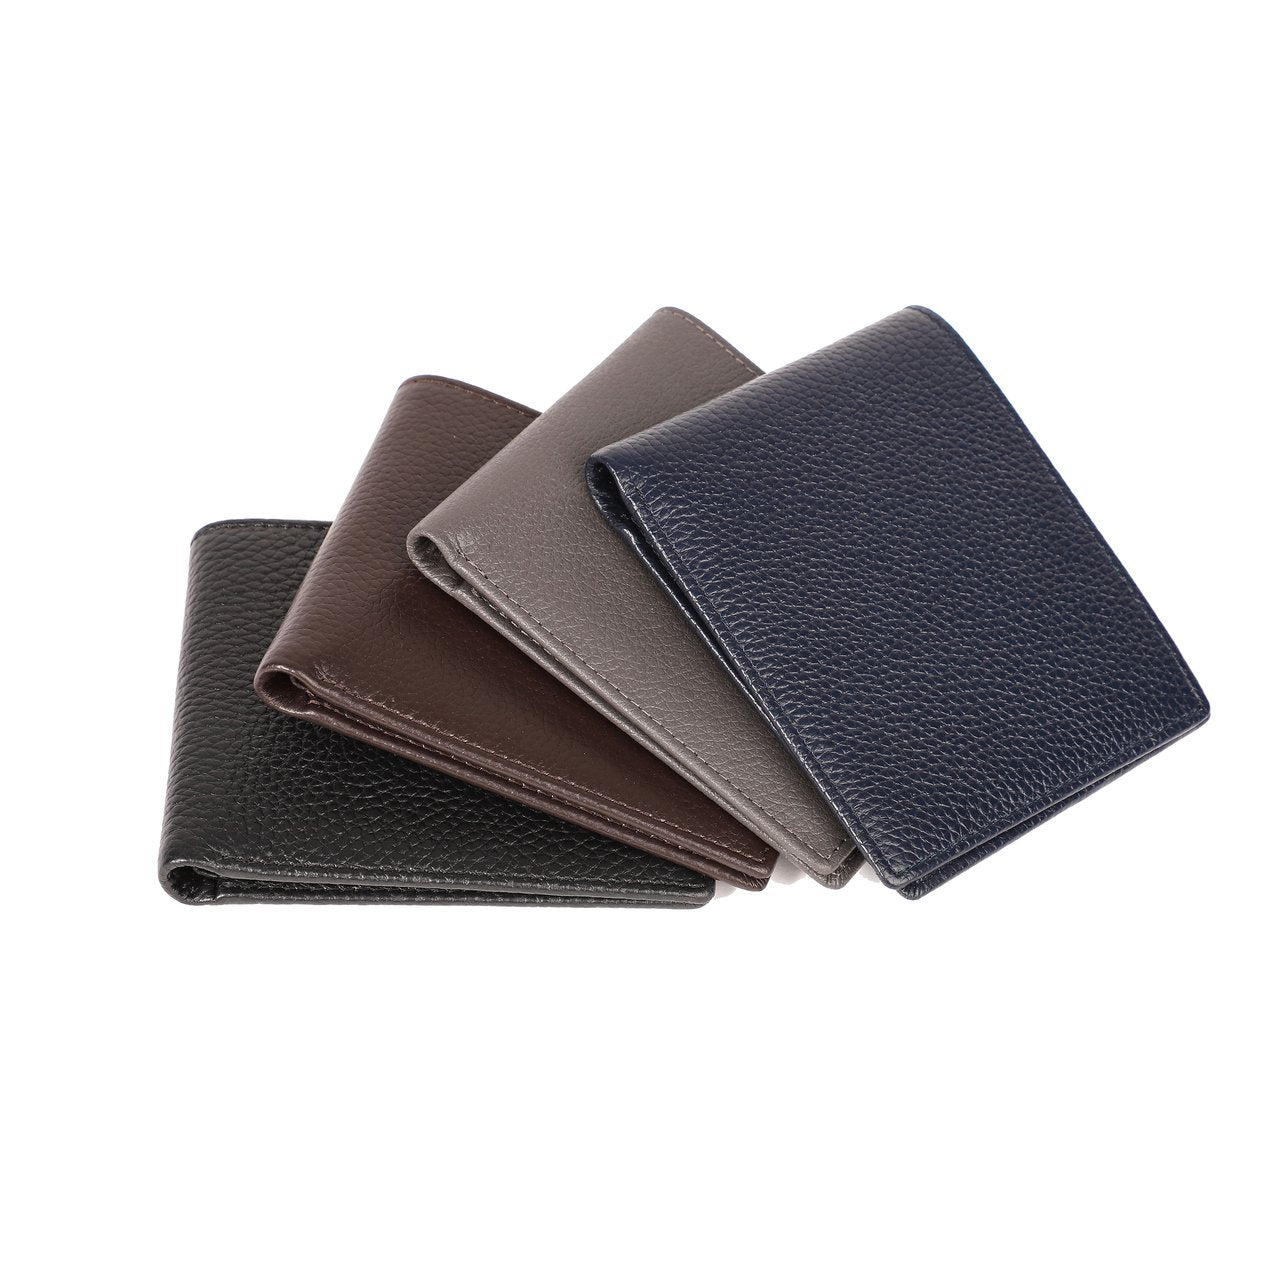 Brouk&Co Leather Wallet w/ Monogramming (Various Colors)